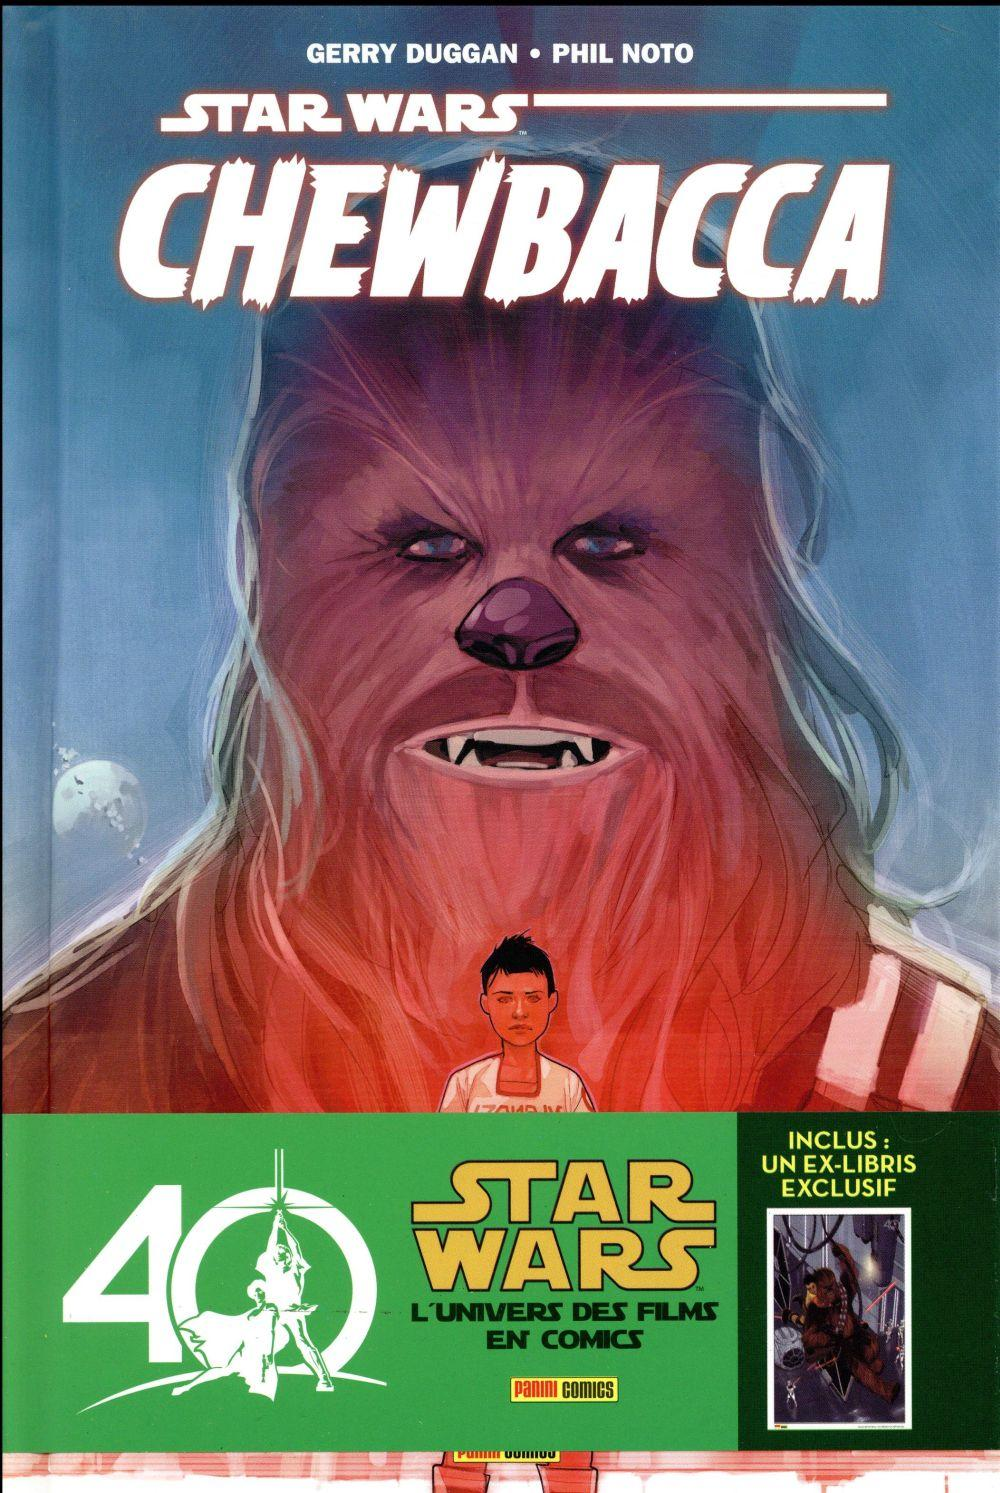 Star Wars - Chewbacca T.1  - Gerry Duggan  - Phil Noto